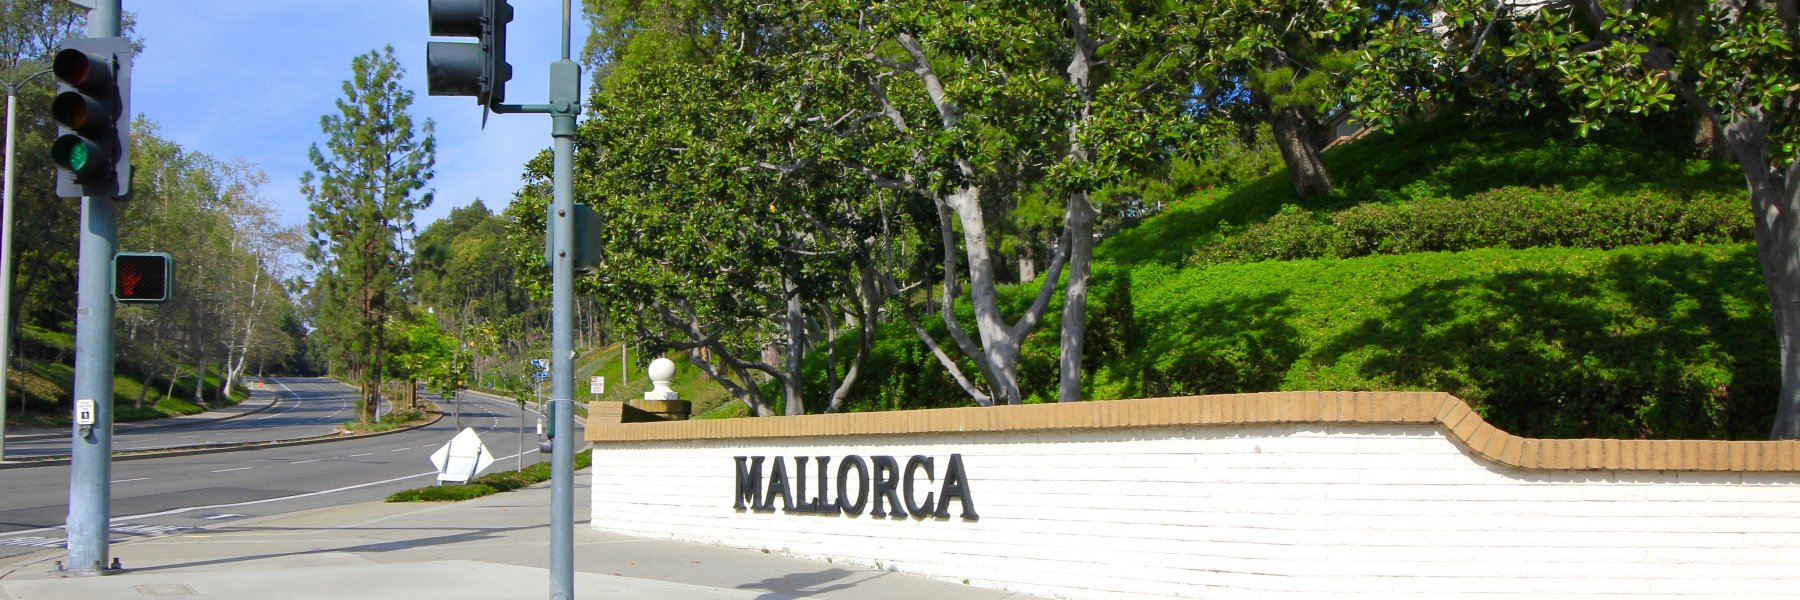 Mallorca Condos is a community of condos in Mission Viejo California